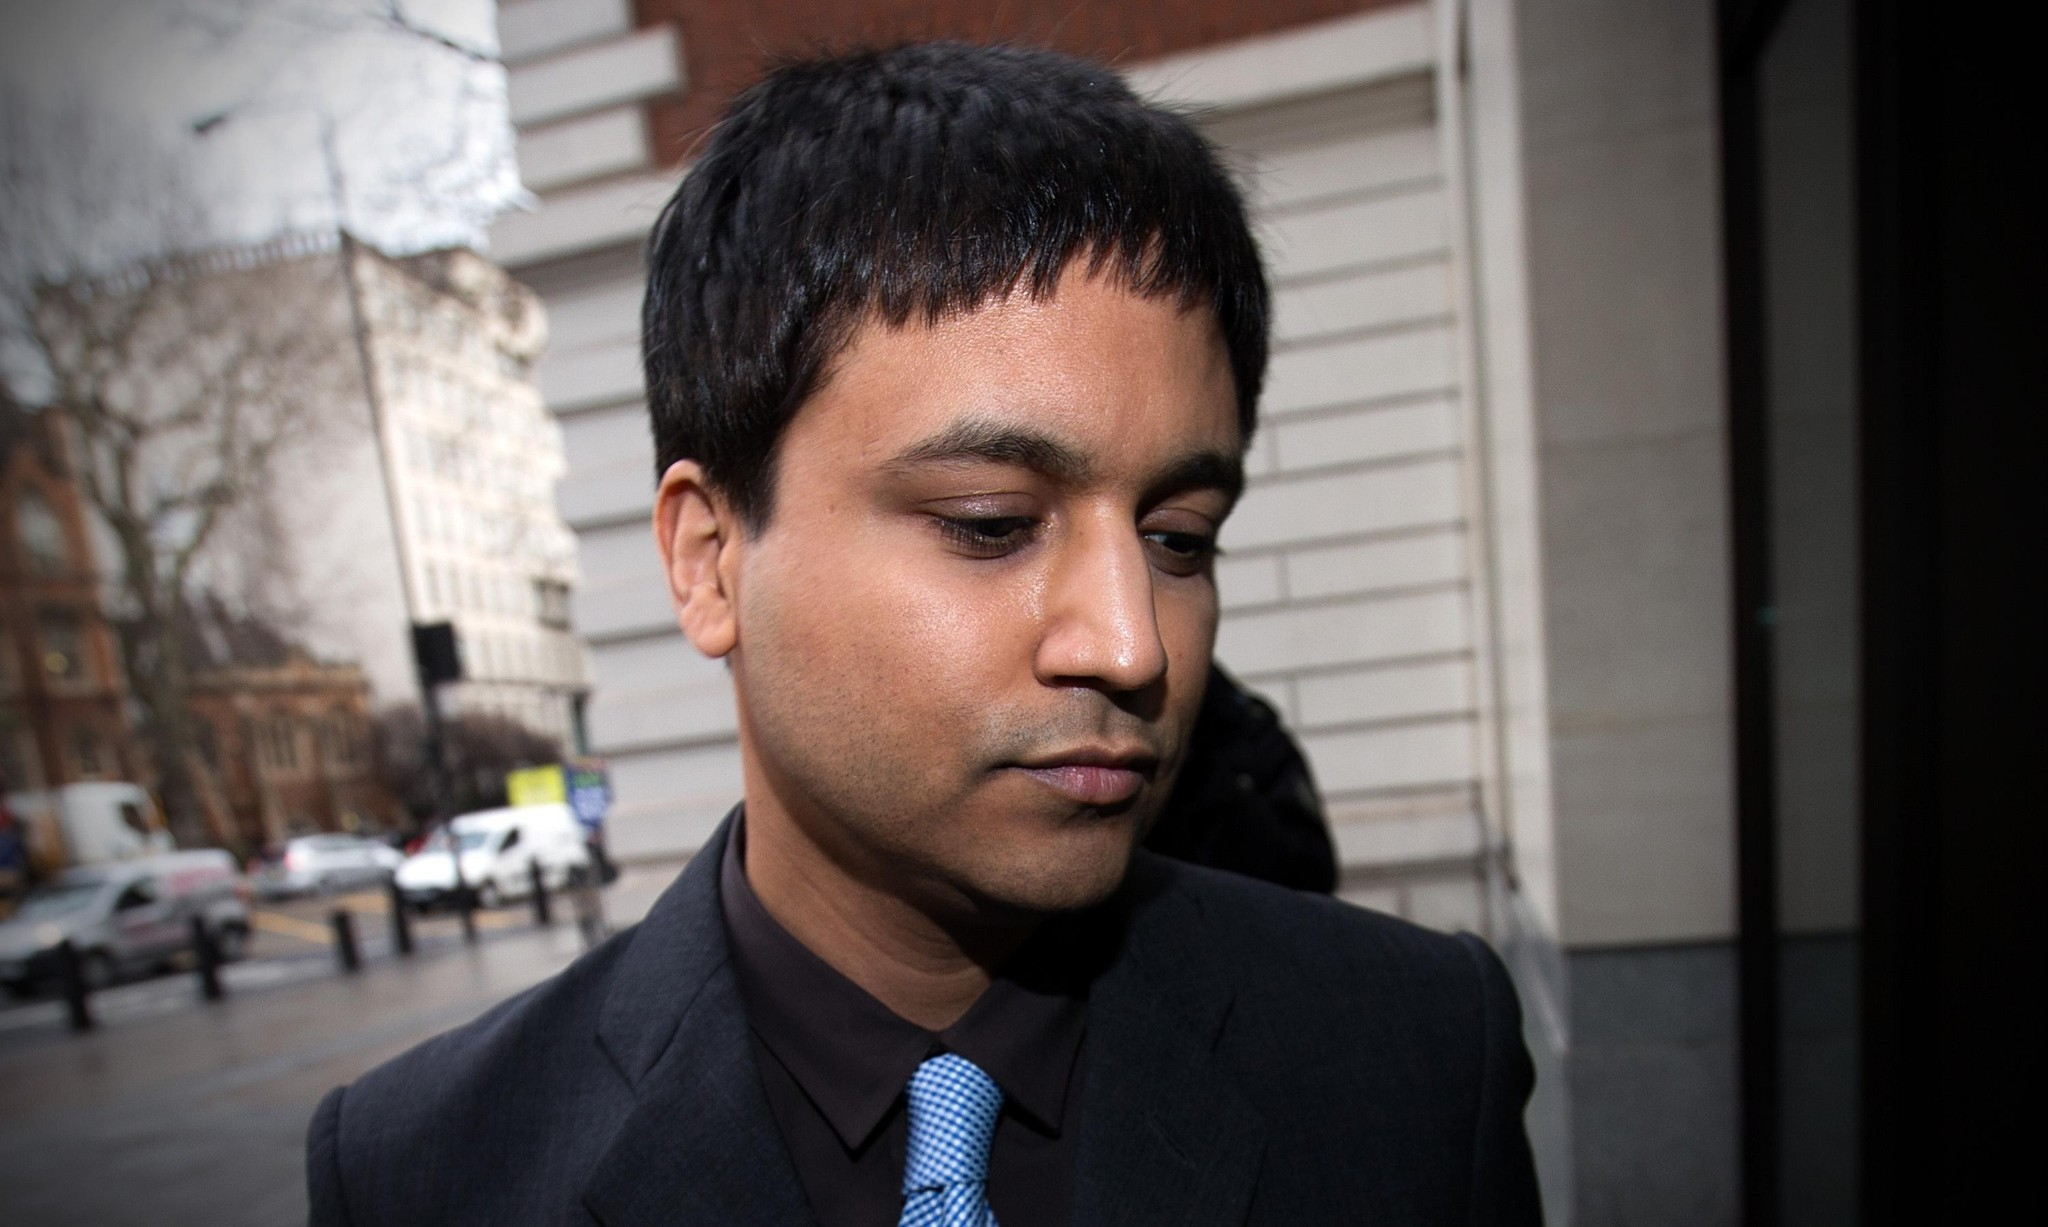 'Flash crash trader' can be extradited to US, judge rules